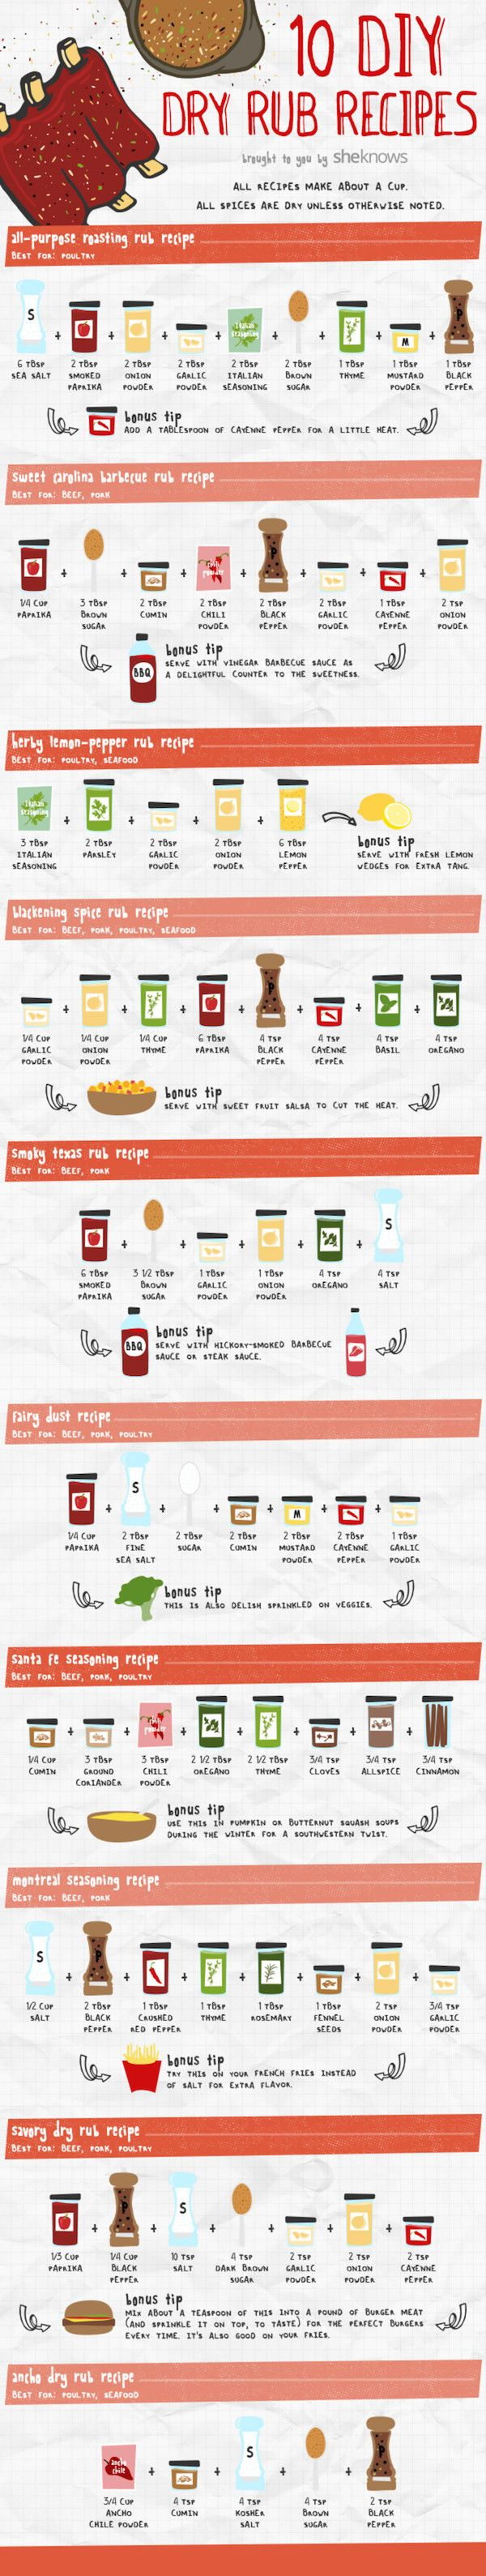 The Ultimate BBQ Rub Recipe Cheat Sheet By Lindi Smith1 day  facebook   twitter   pinterest  Flickr/jeffreywMaking the perfect dry rub for your summer barbecue can get tricky sometimes. Thanks to SheKnows, we have 10 different dry rub recipes all in one easy guide. Whether you're looking for a recipe to bring the heat or a sweet Carolina rub, this infographic has it all. You'll never need to buy store-bought dry rub ever again!These 10 rubs work on all types of meats, but the guide will…